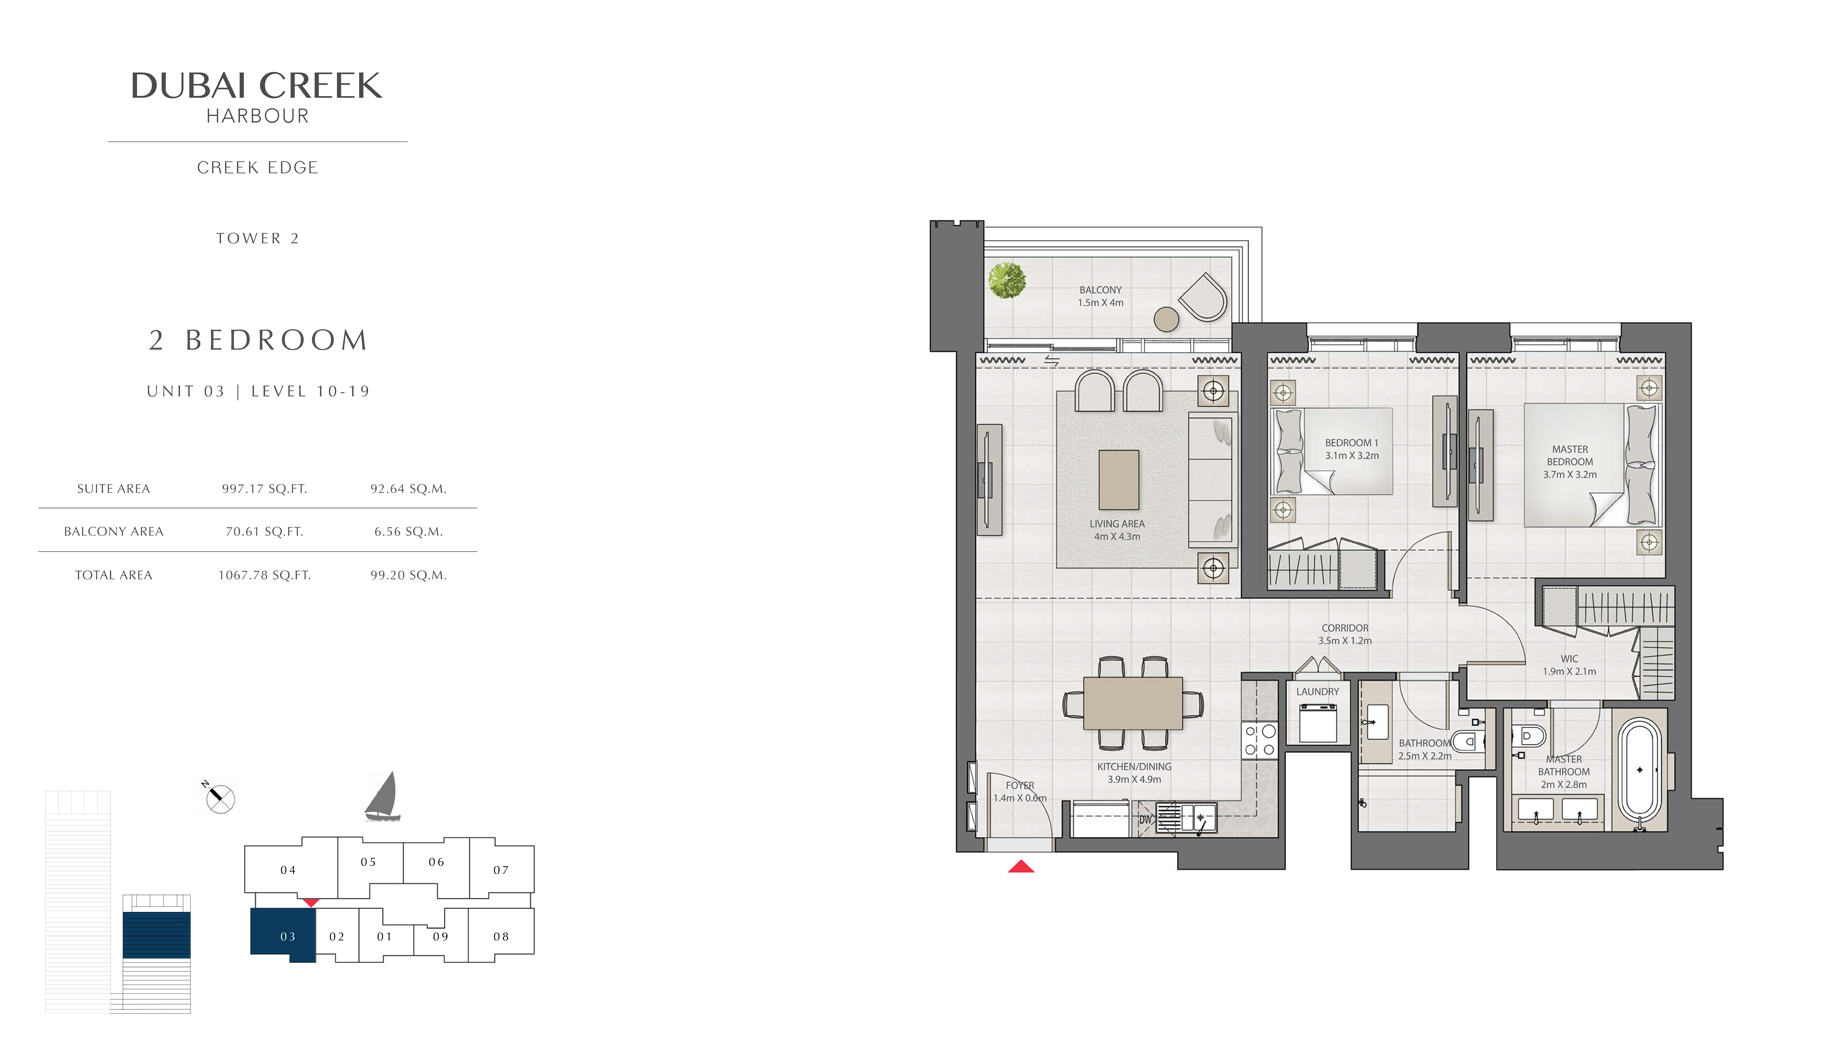 2 Bedroom Tower 2 Unit 3 Level 10-19 Size 1067 sq.ft